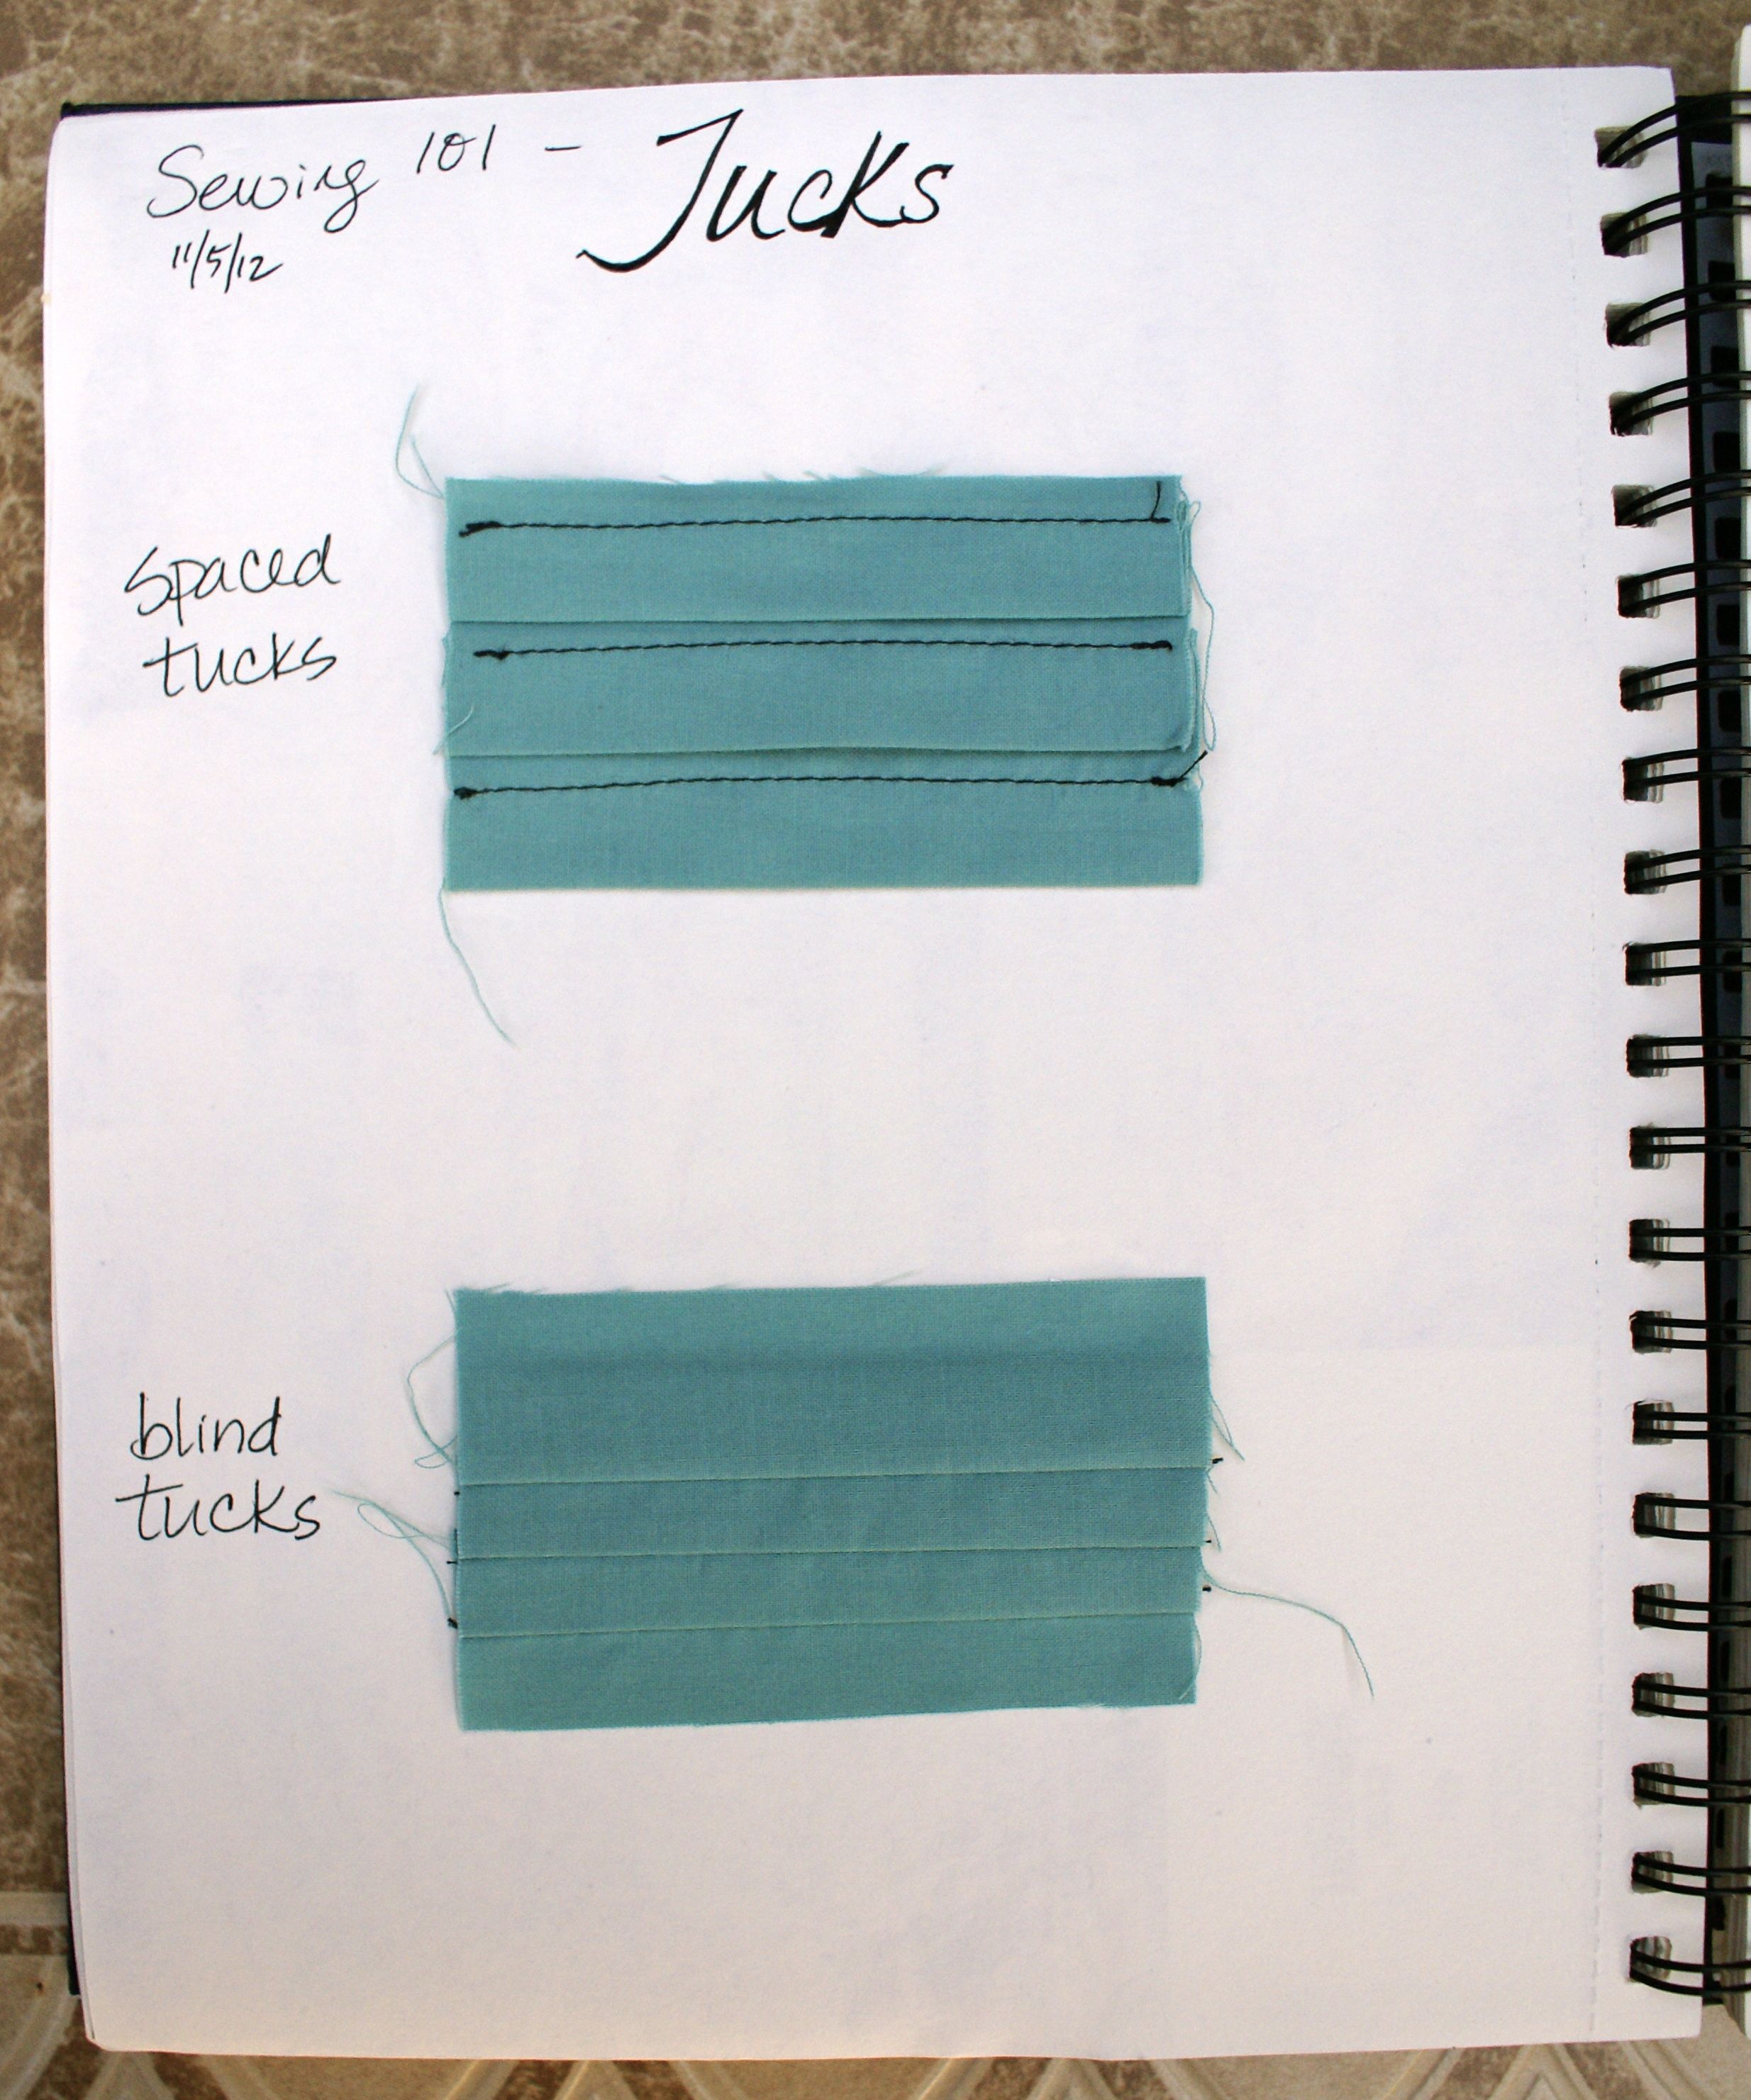 Sewing 101: Tucks via The Thinking Closet